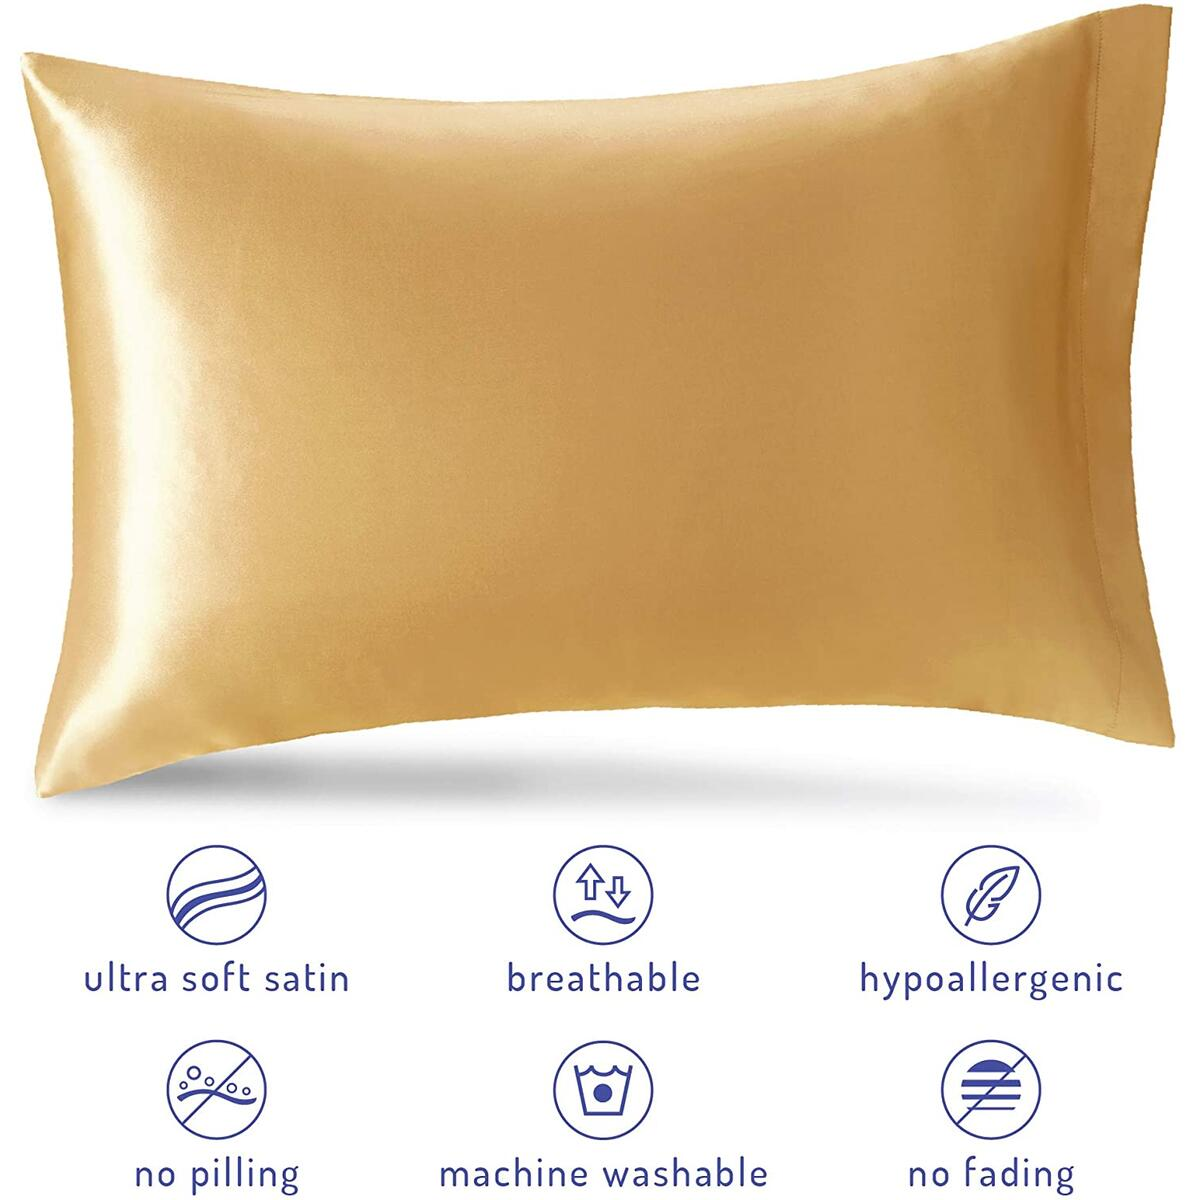 2 Pack -Queen Size ANY COLOR - Silky Satin Pillowcase for Hair and Skin |  Queen Pillow Case, 20 x 30 Inch – Reduce Skin Irritation & Frizzy Hair | Retains Color in Easy Machine Wash & Dry